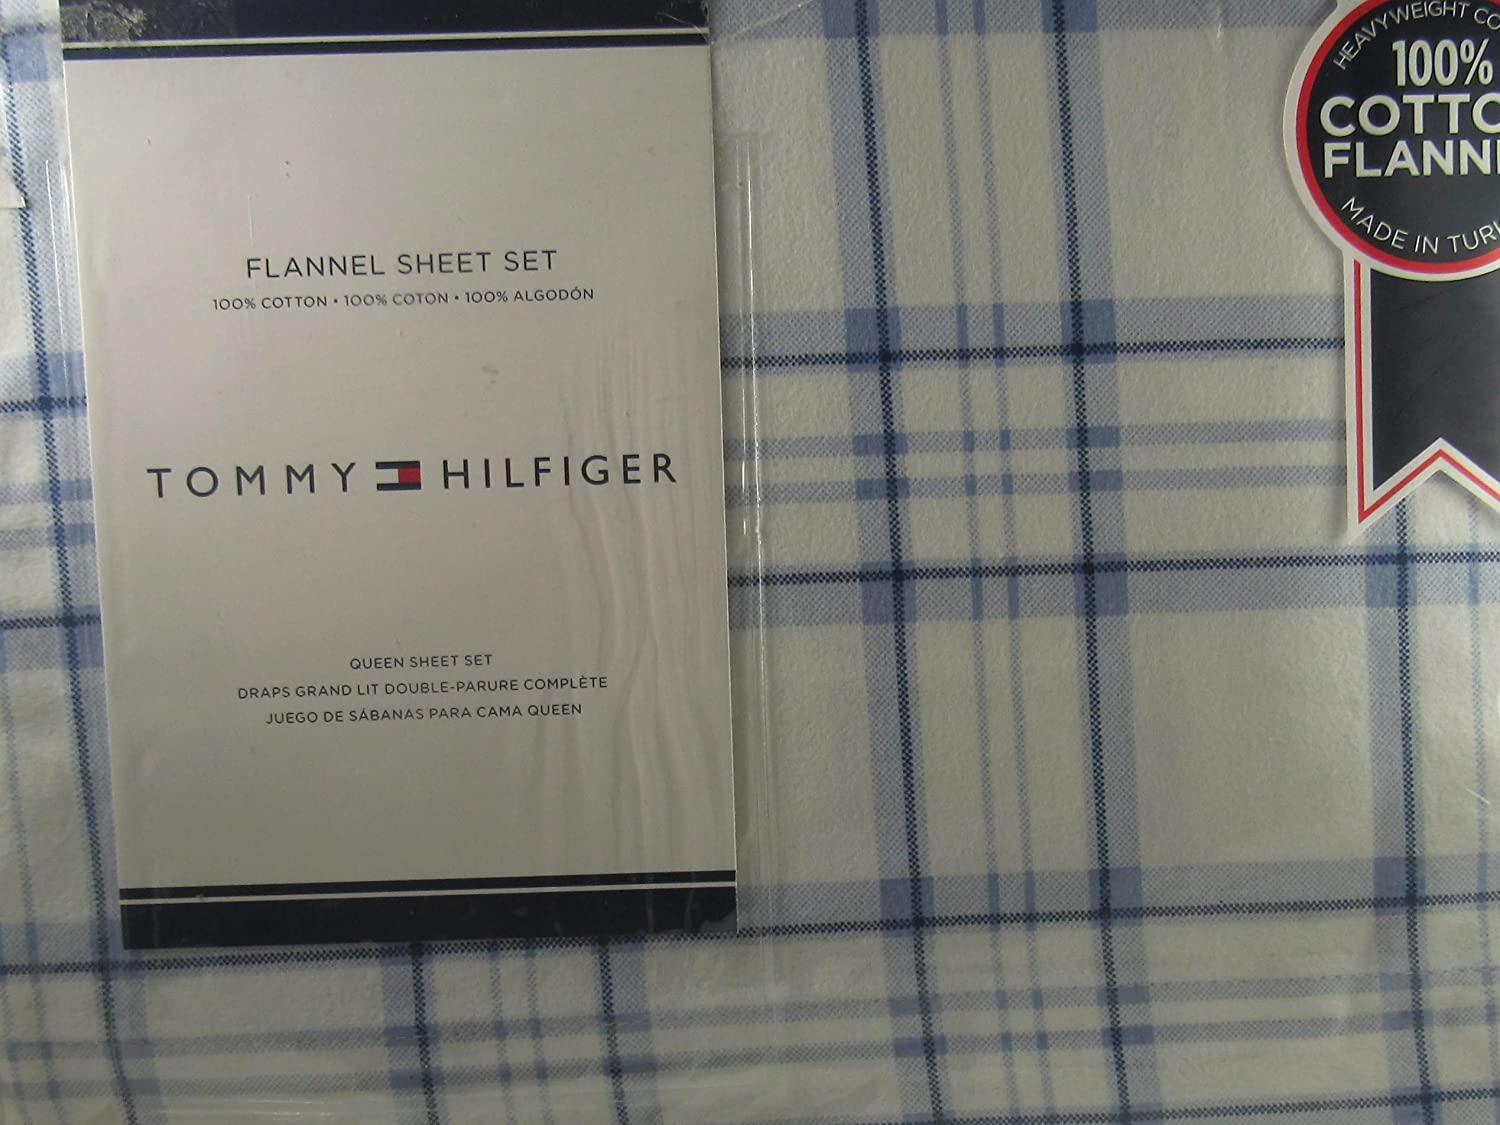 Amazon.com: Tommy Hilfiger Flannel Sheet Set 100% Cotton Christmas Queen Made in Turkey Plaid: Home & Kitchen